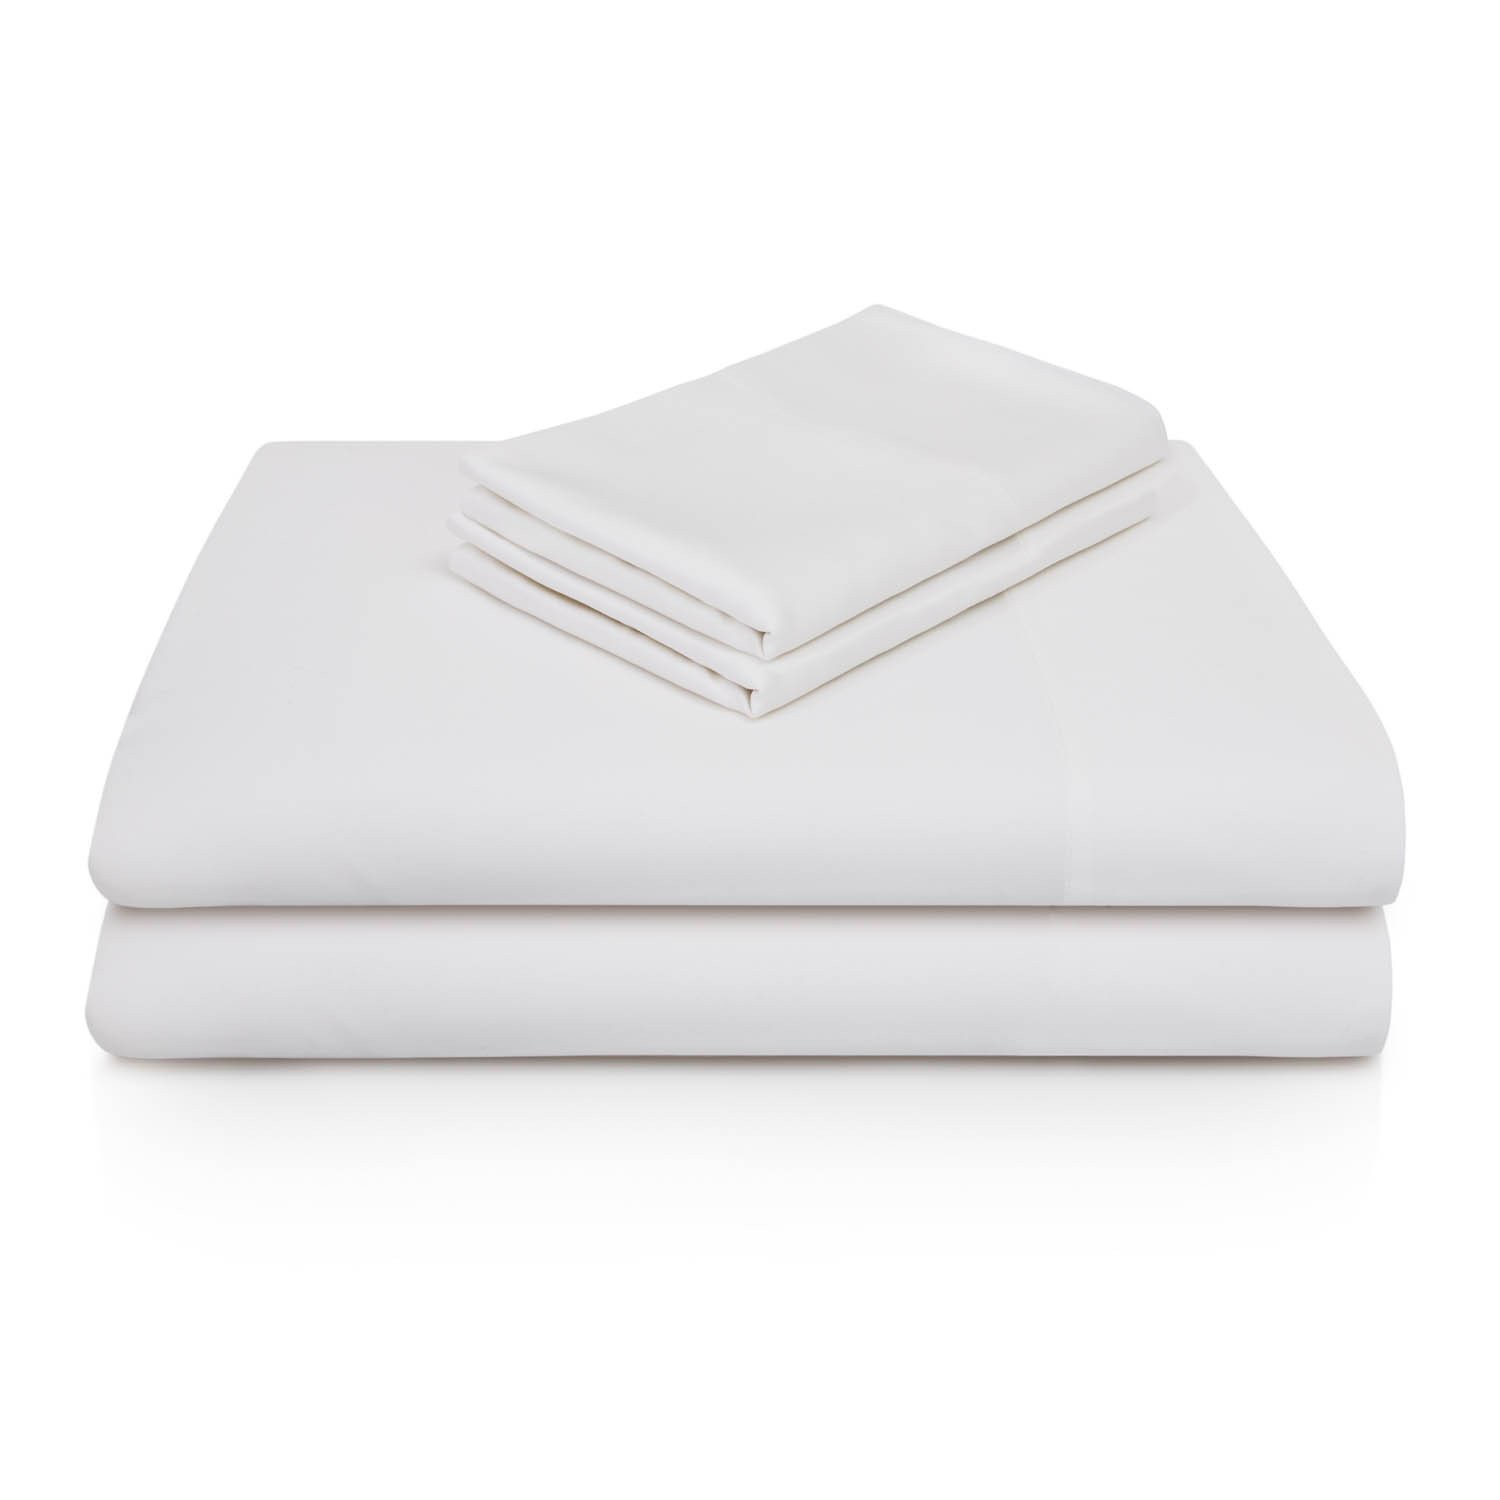 protector modern sheets and hotel sales touch king large mattress of pillows bamboo comfort